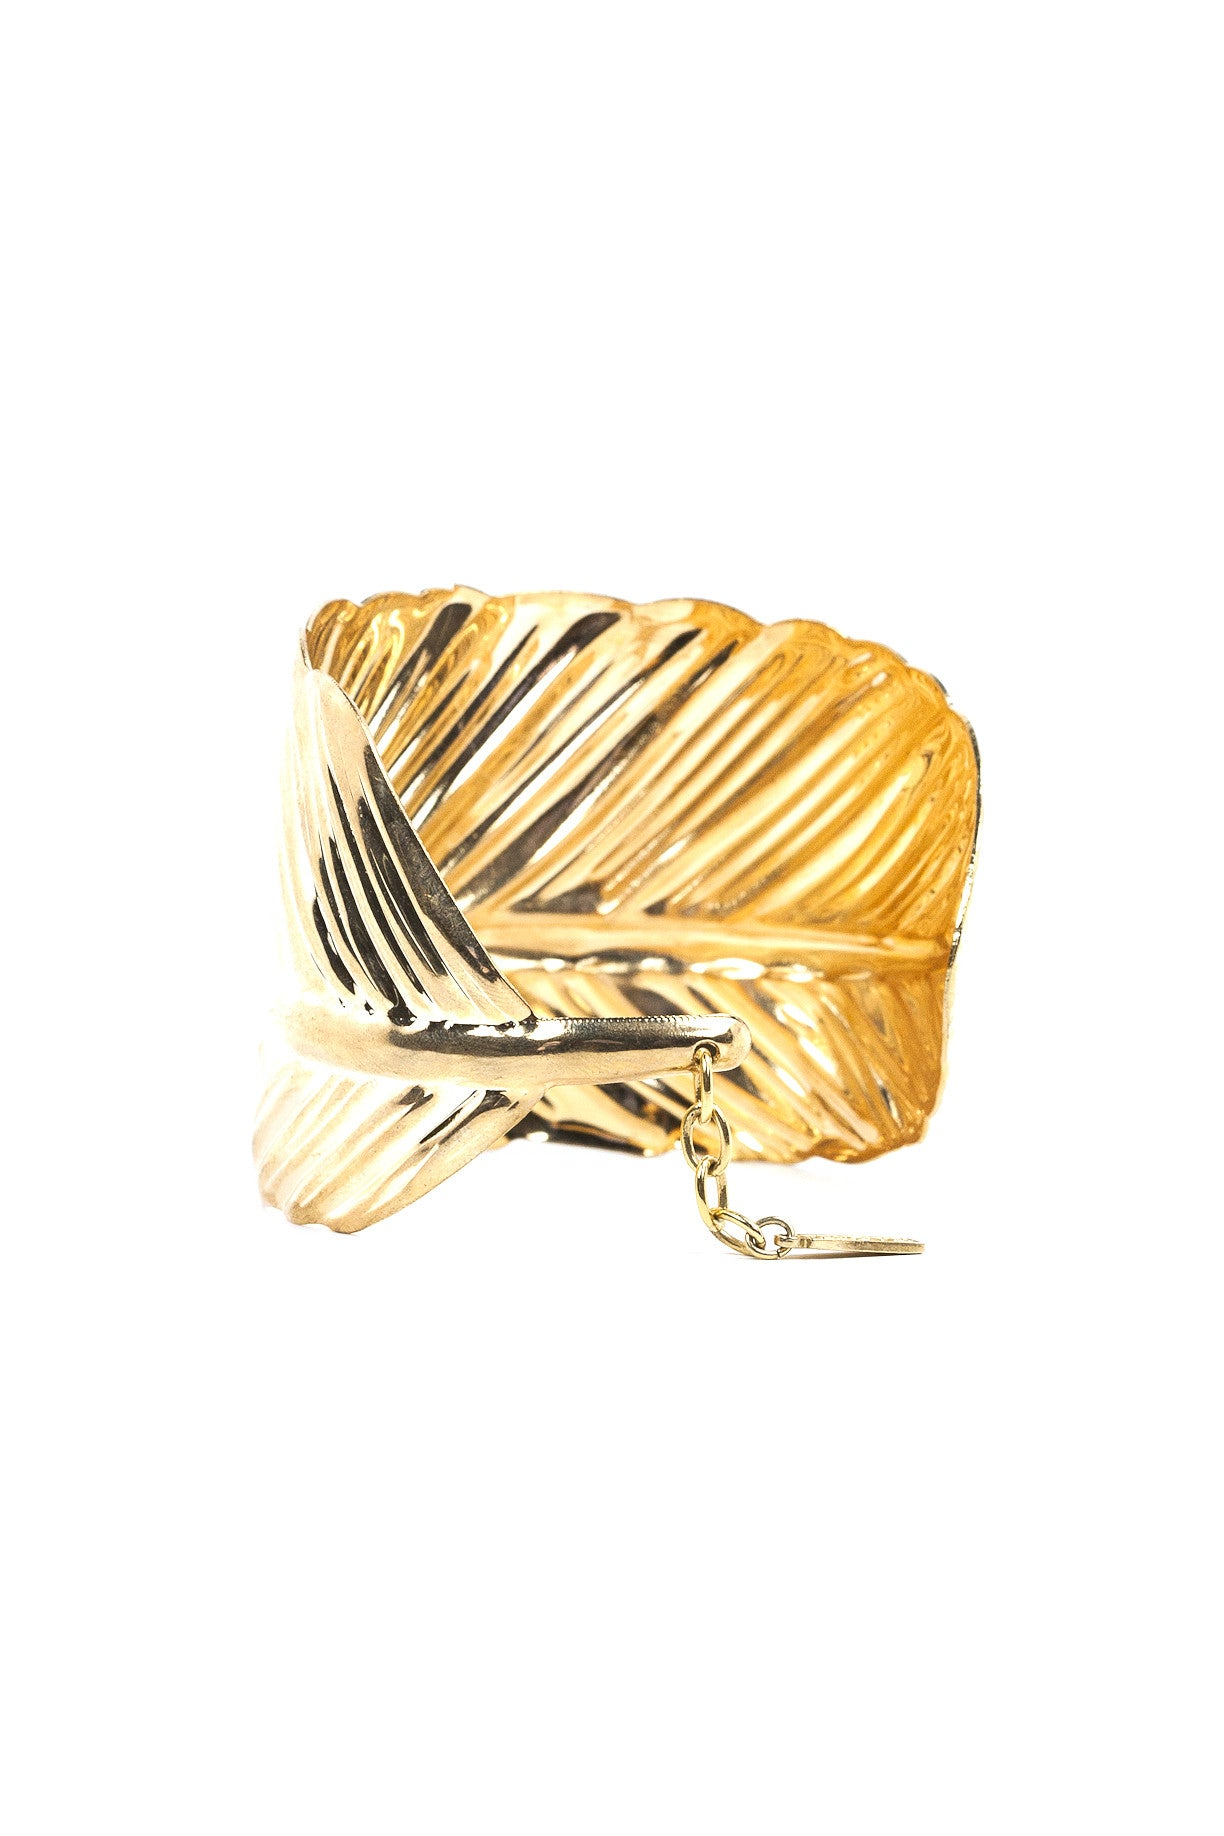 80's__Napier__Statement Feather Cuff